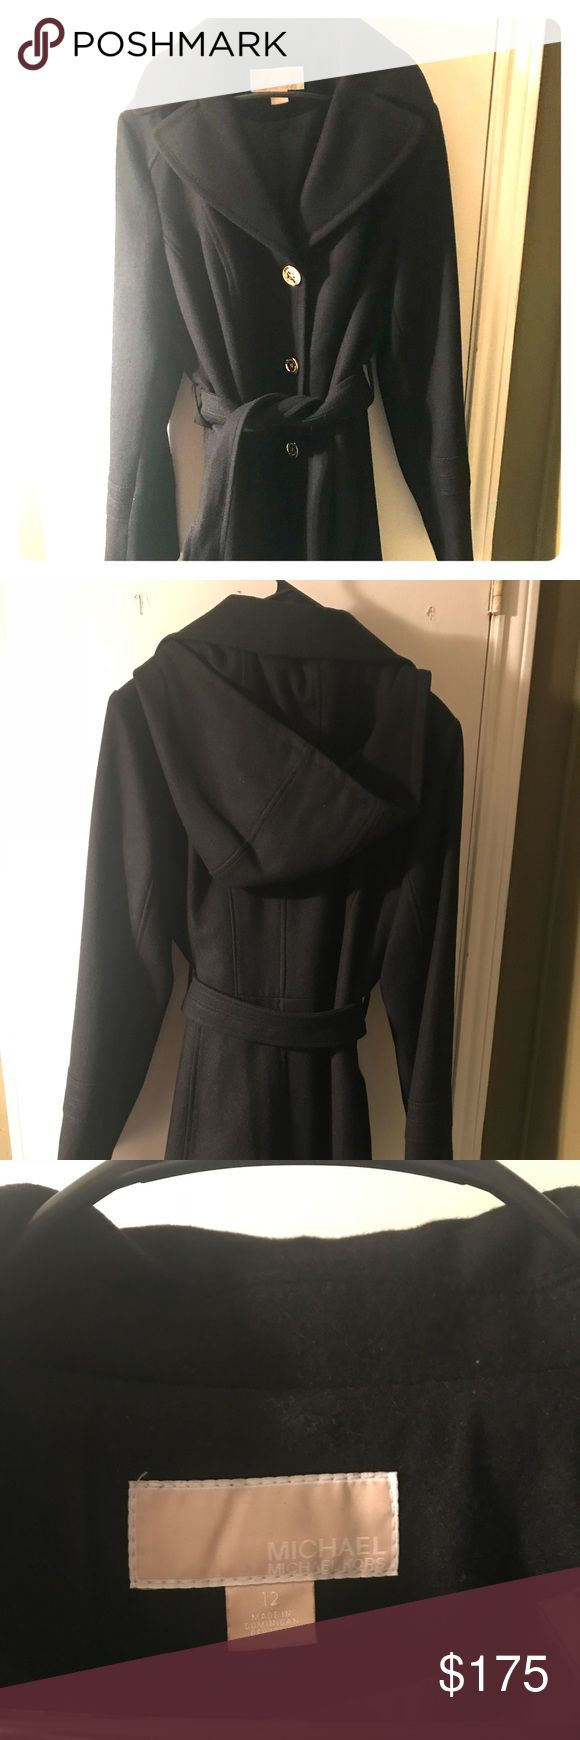 Michael Kors Petite Walker Coat This item has NEVER been worn; it was a gift and the size was wrong, missed return policy date. It's in great condition, kept bagged, has hood and original fabric tag for authenticity, thick and amazing quality. KORS Michael Kors Jackets & Coats Pea Coats